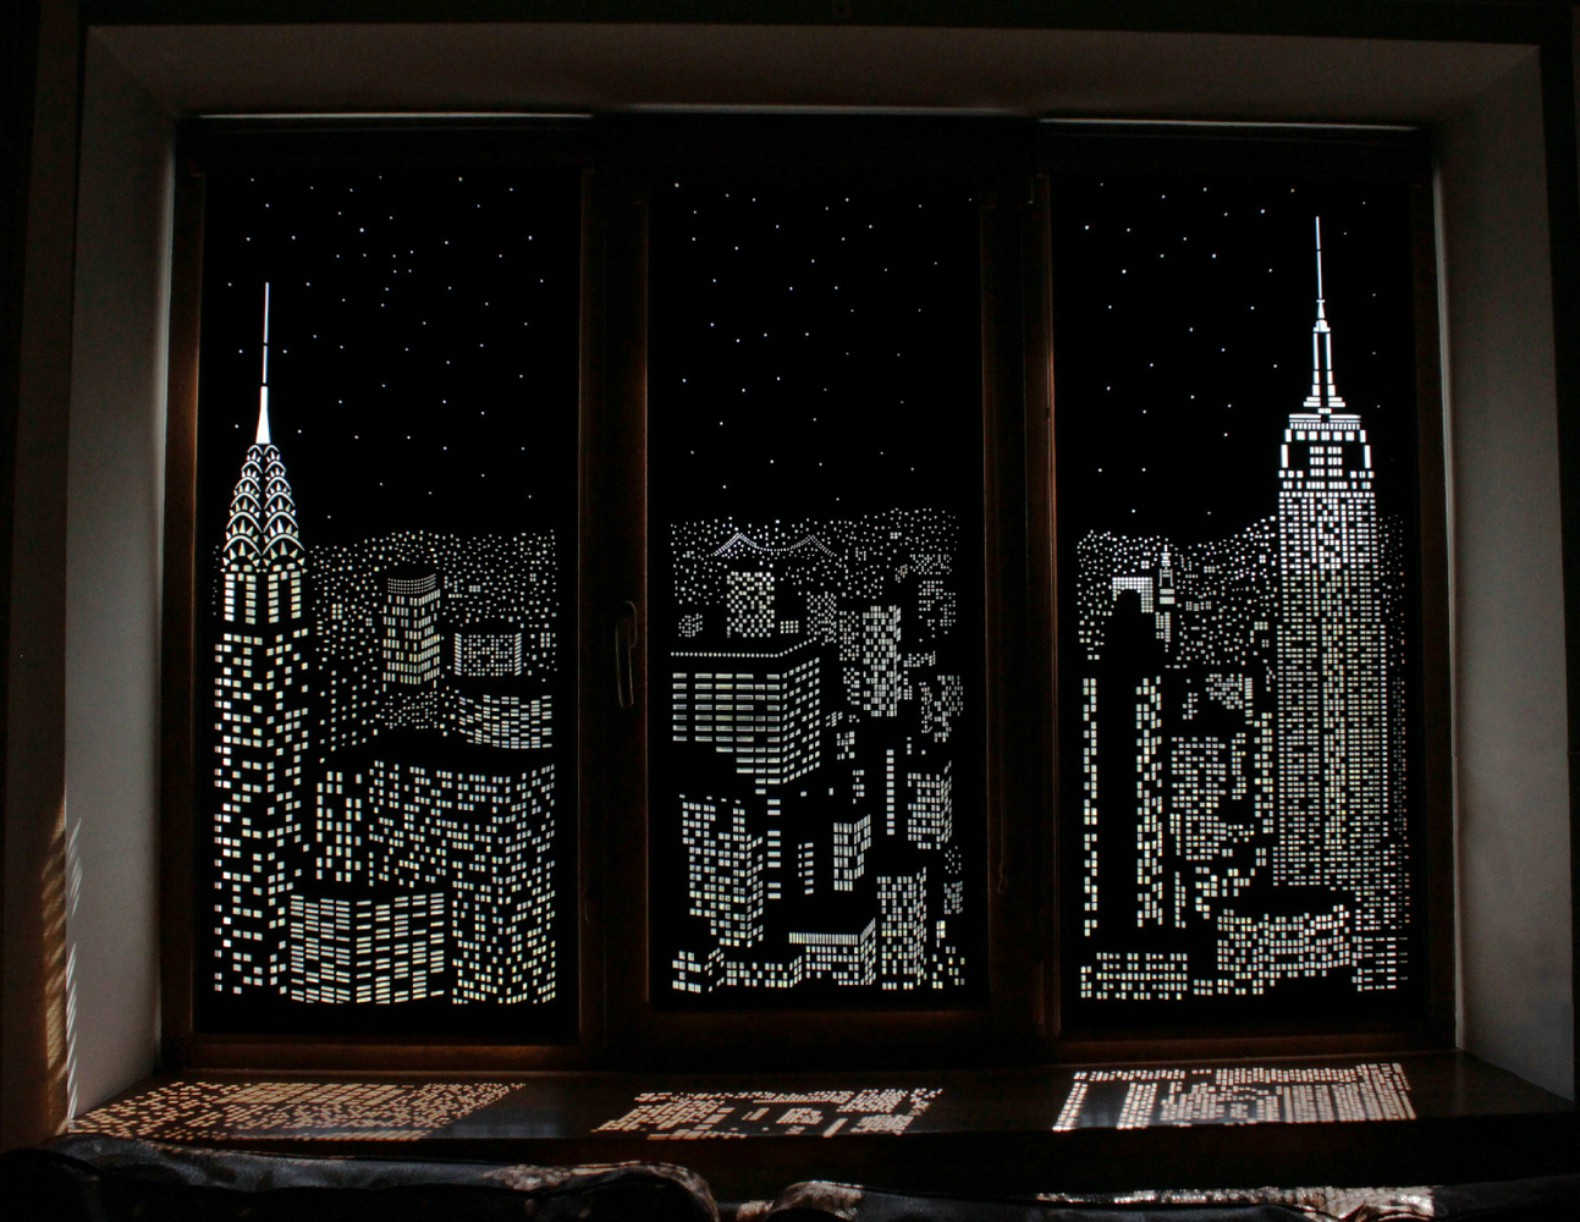 Holeroll Cityscape Curtains Interior Design Insulating That Shine Shimmery